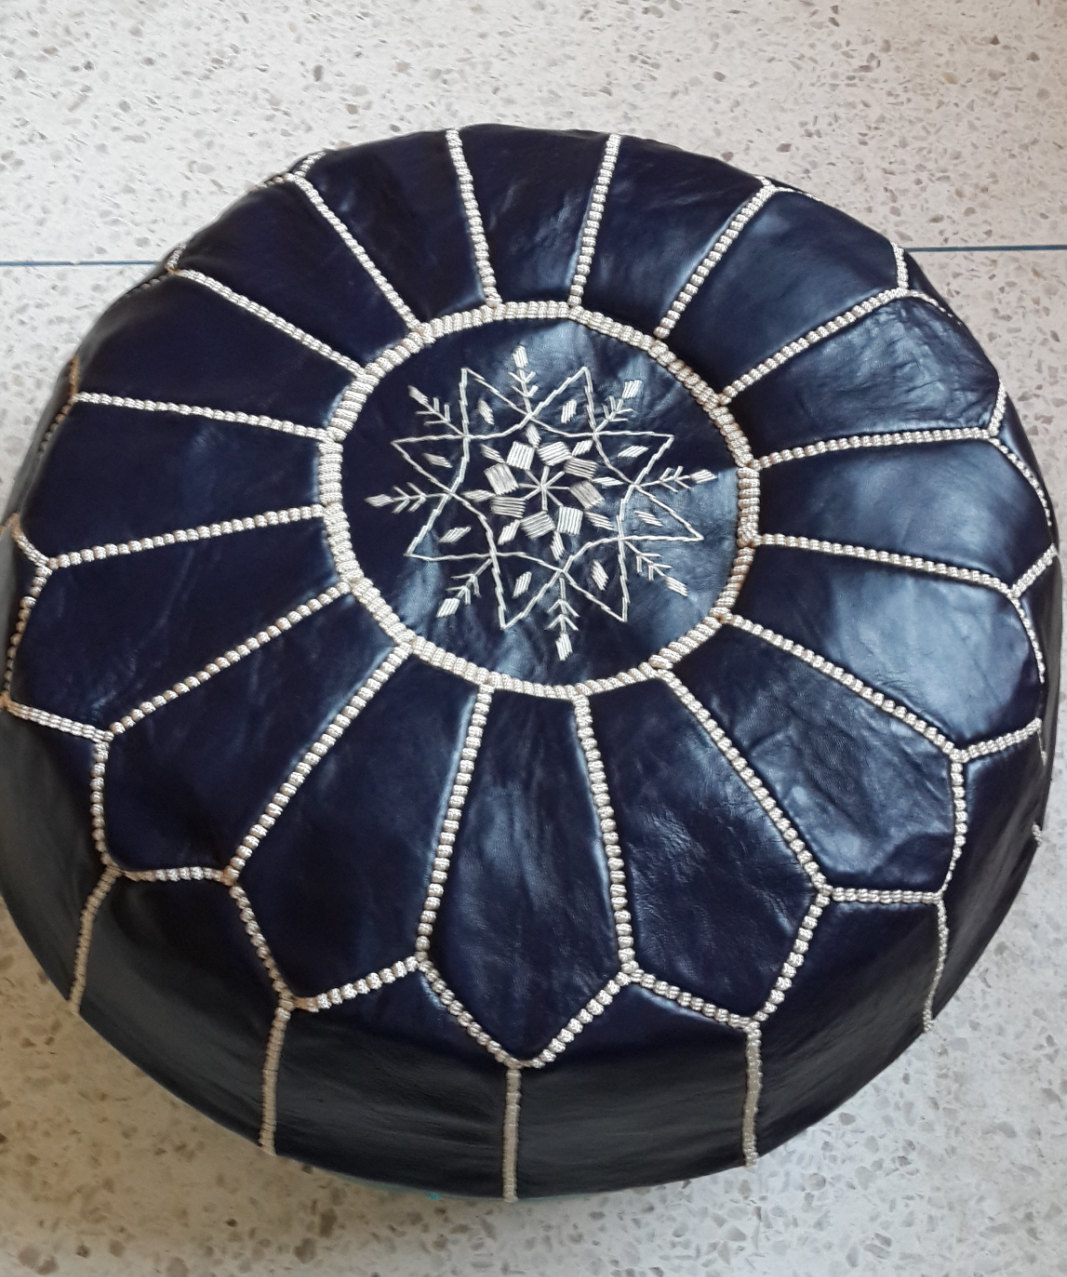 Stuffed Pouf /High Quality / Hand stitched & embroidered Leather Ottoman Poof /